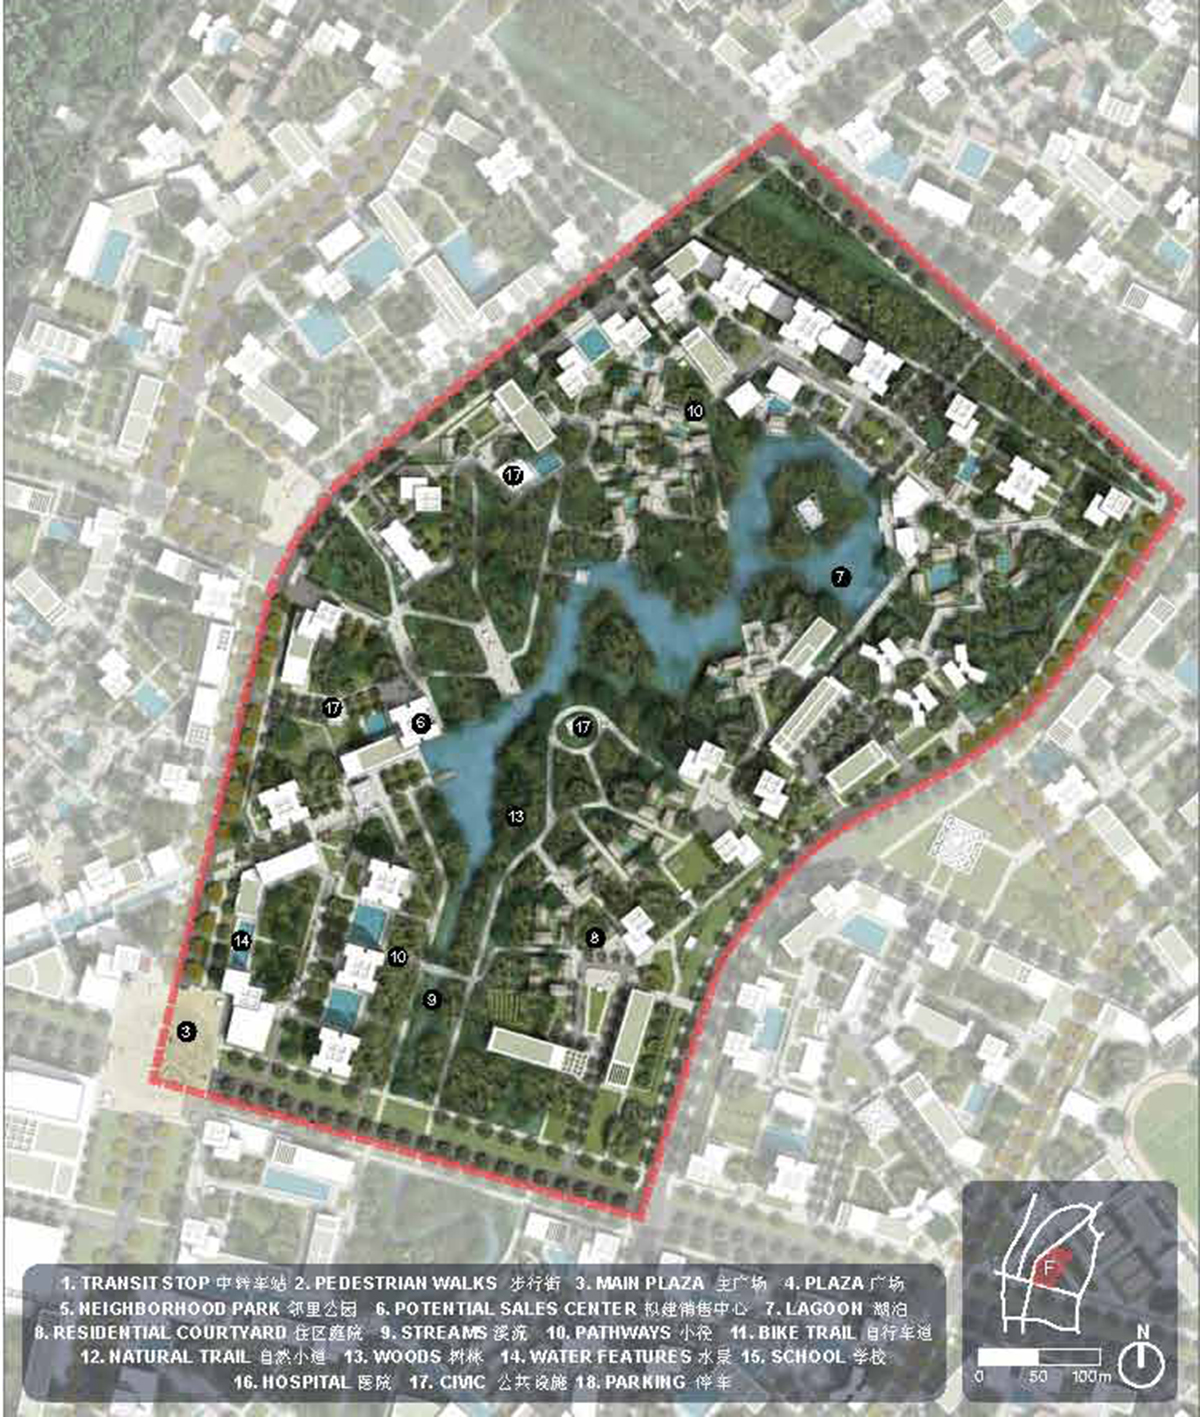 09-LUJIAO DEVELOPMENT